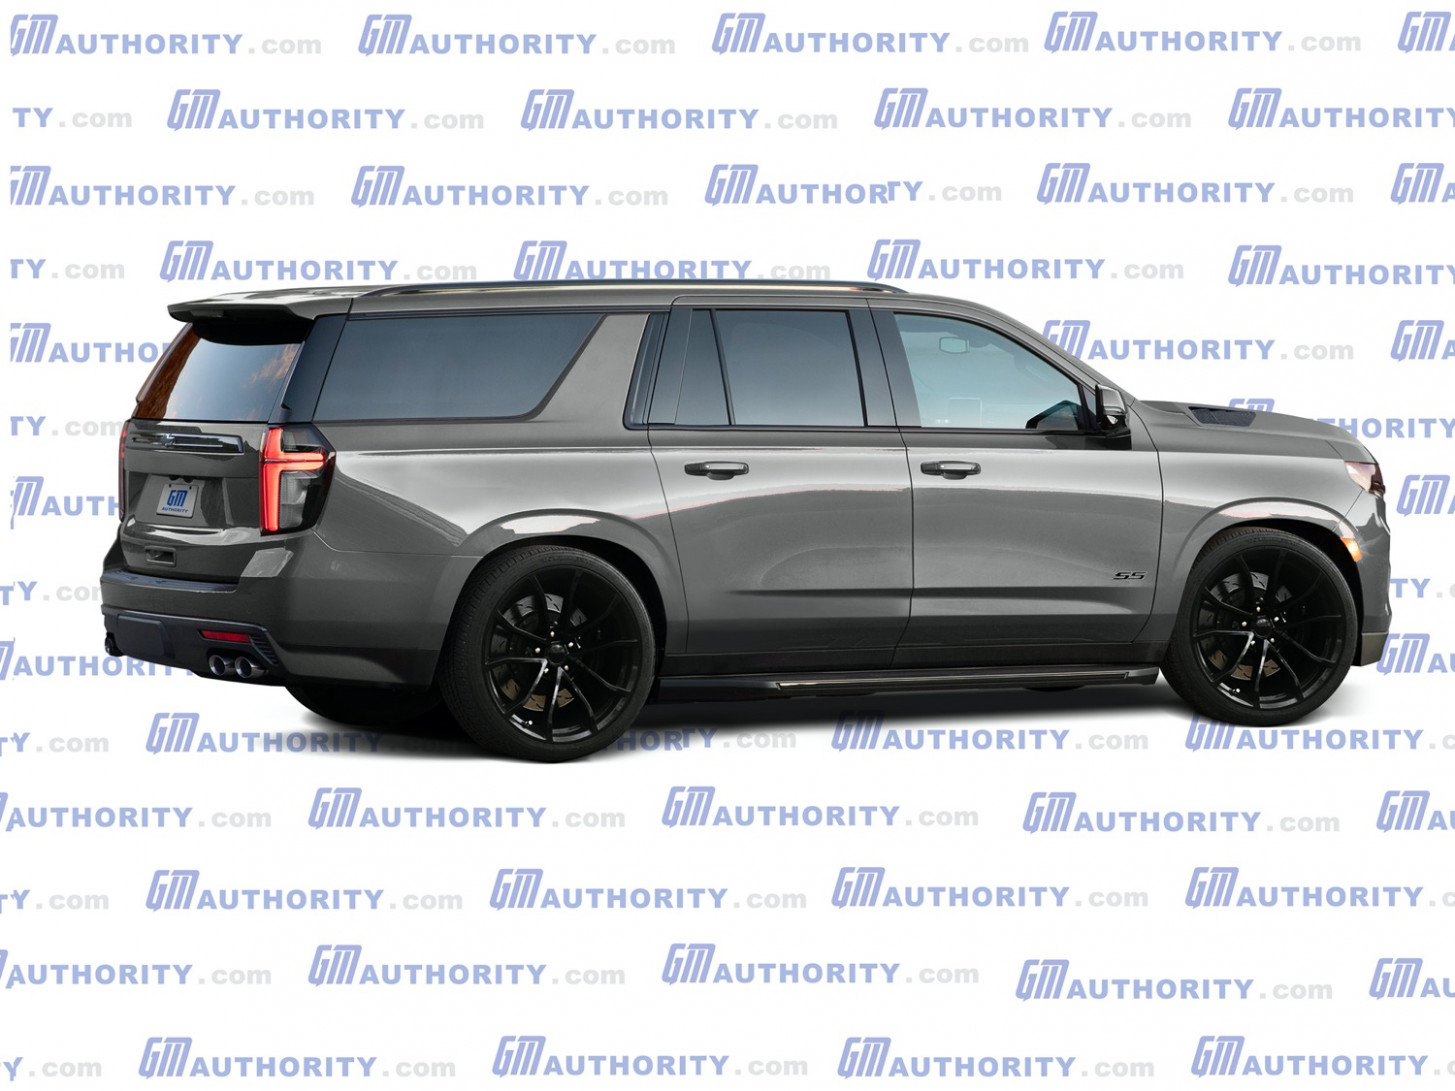 New Model and Performance 2022 Chevrolet Suburban